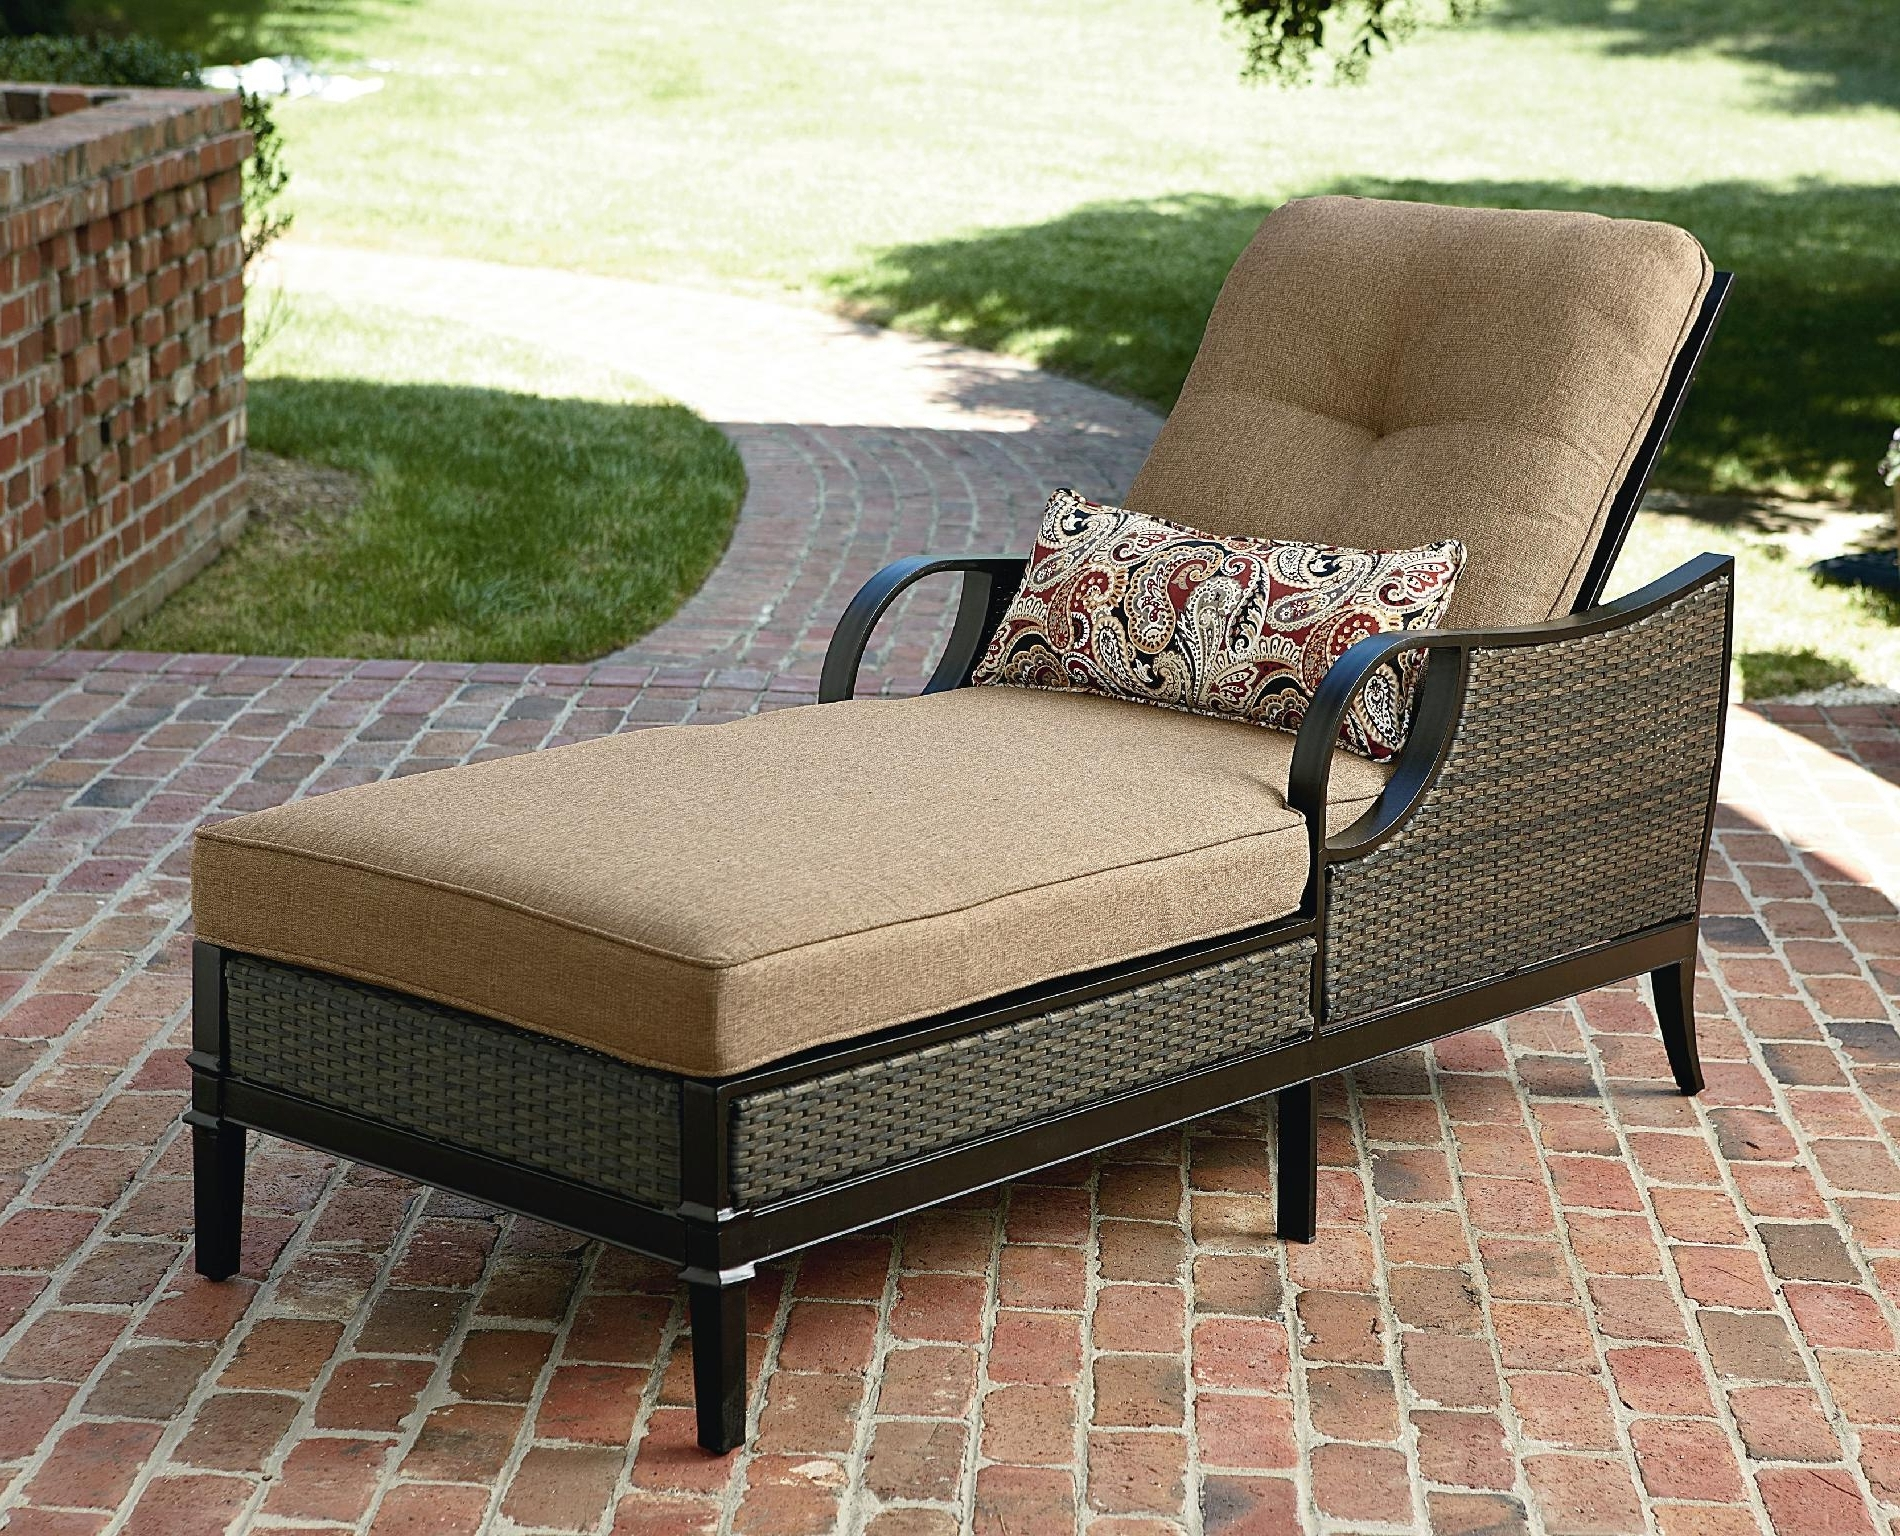 Patio Furniture Chaise Lounge Chairs • Lounge Chairs Ideas With Most Up To Date Outdoor Pool Furniture Chaise Lounges (View 5 of 15)